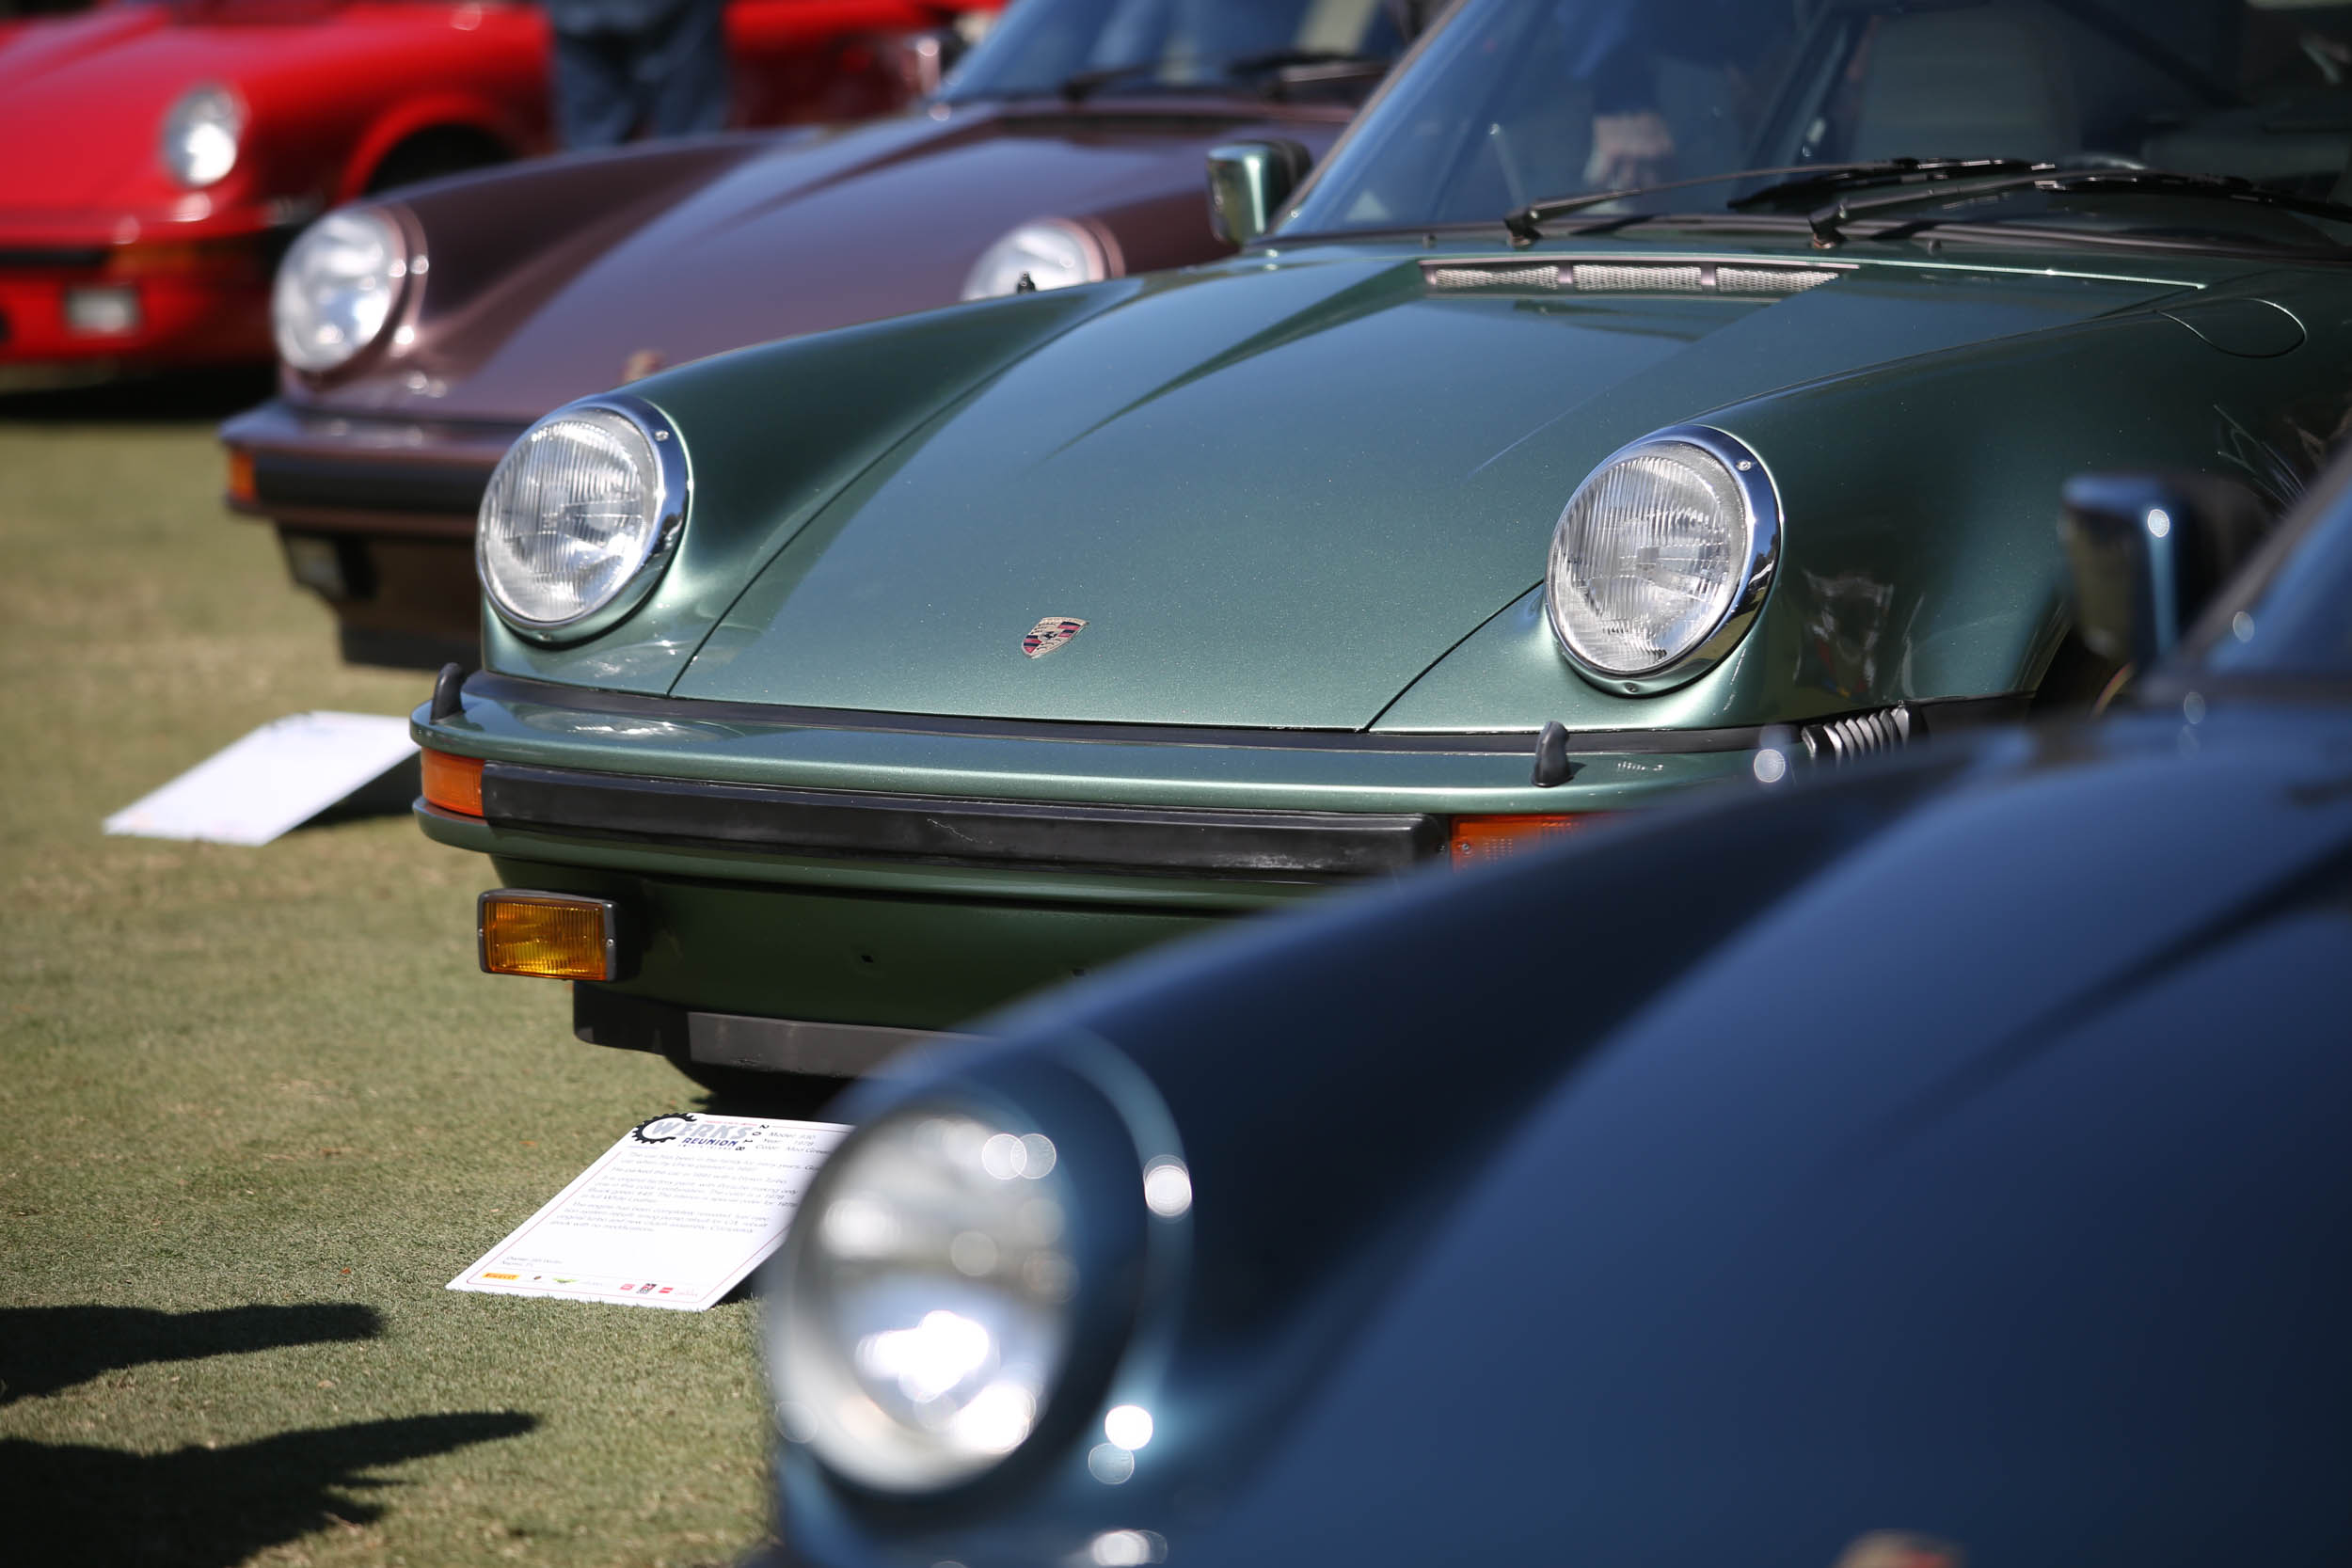 The Werks Reunion brought out dozens and dozens of Porsches, including a full spectrum of 911s.